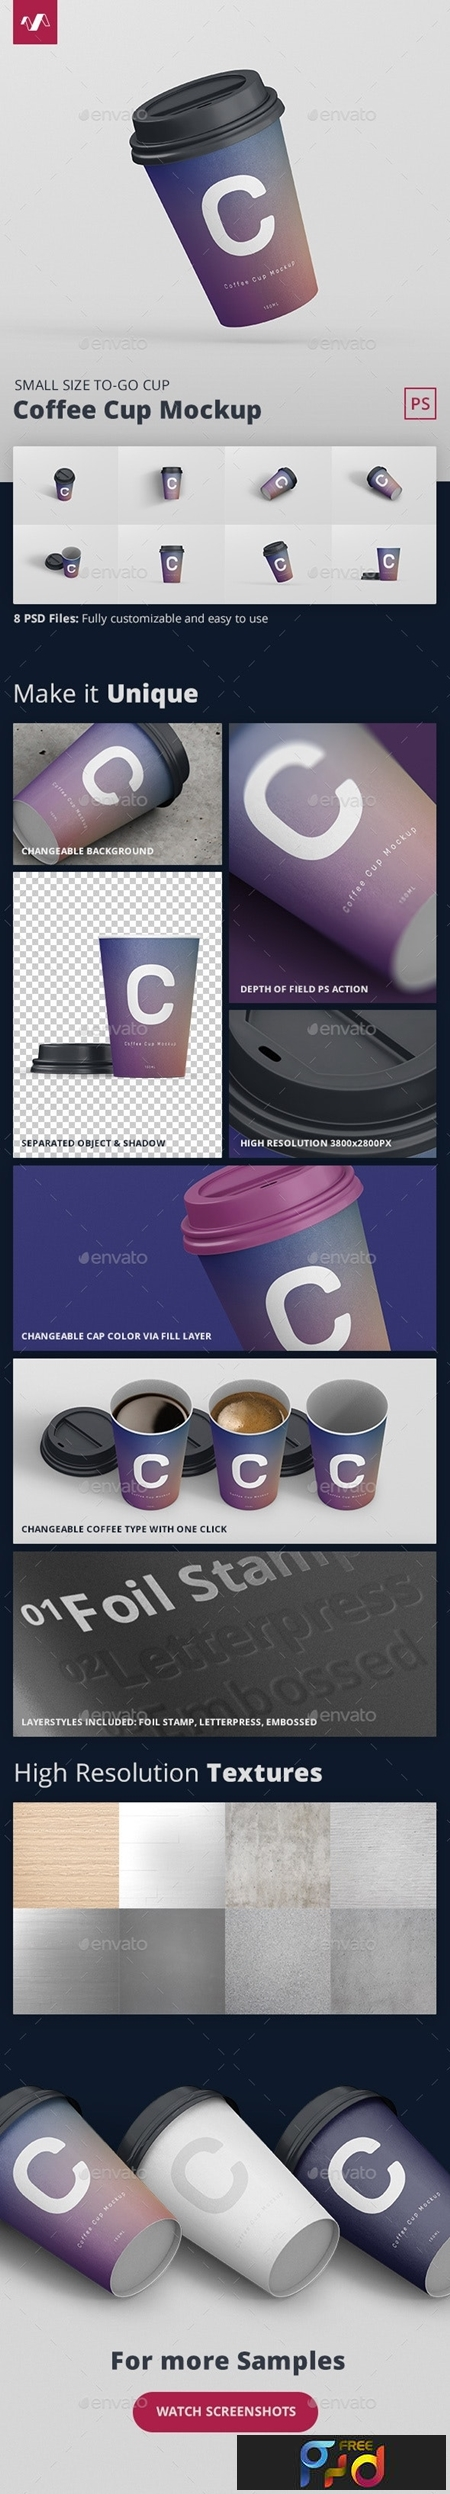 Coffee Cup Mockup Small Size 1